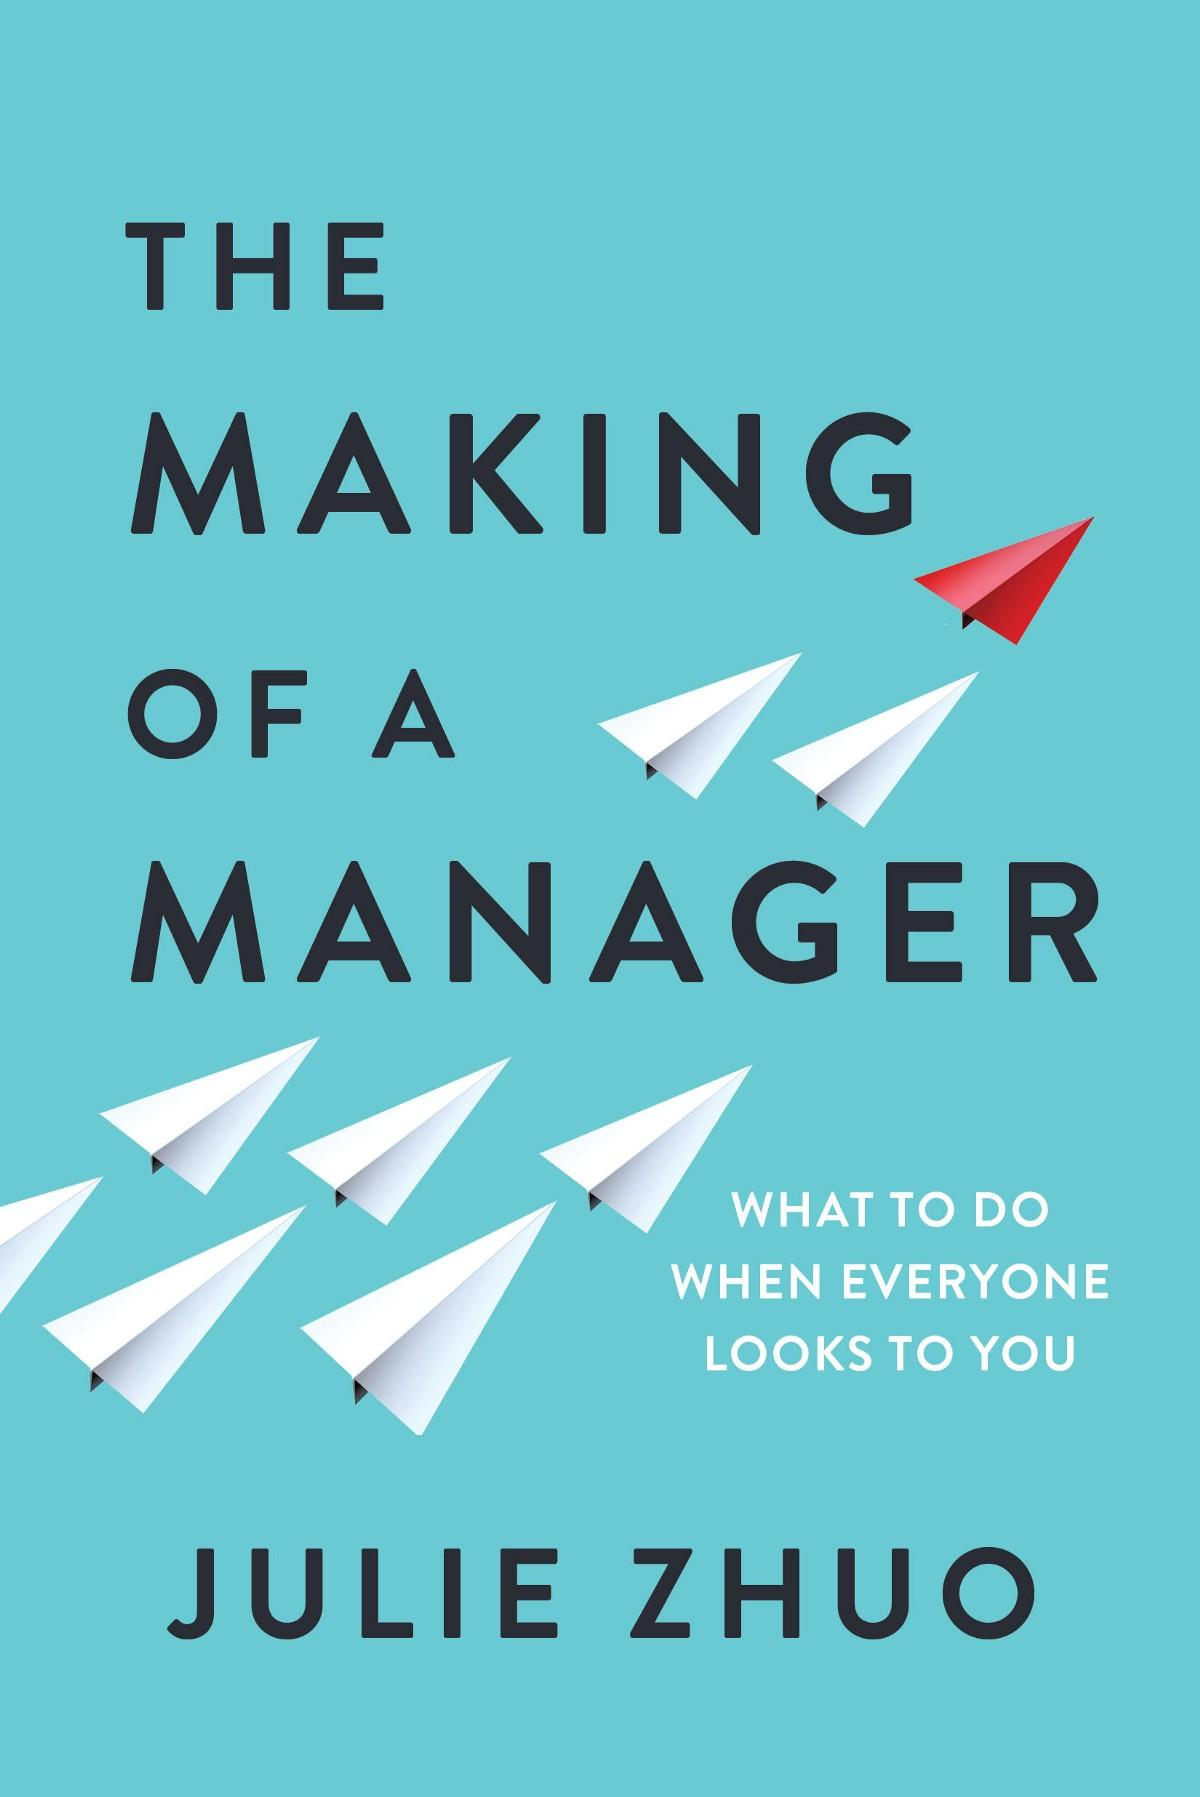 Enterprise Auto Finance >> 'The Making of a Manager' by Julie Zhou (Mar. 19) | Business Insider India